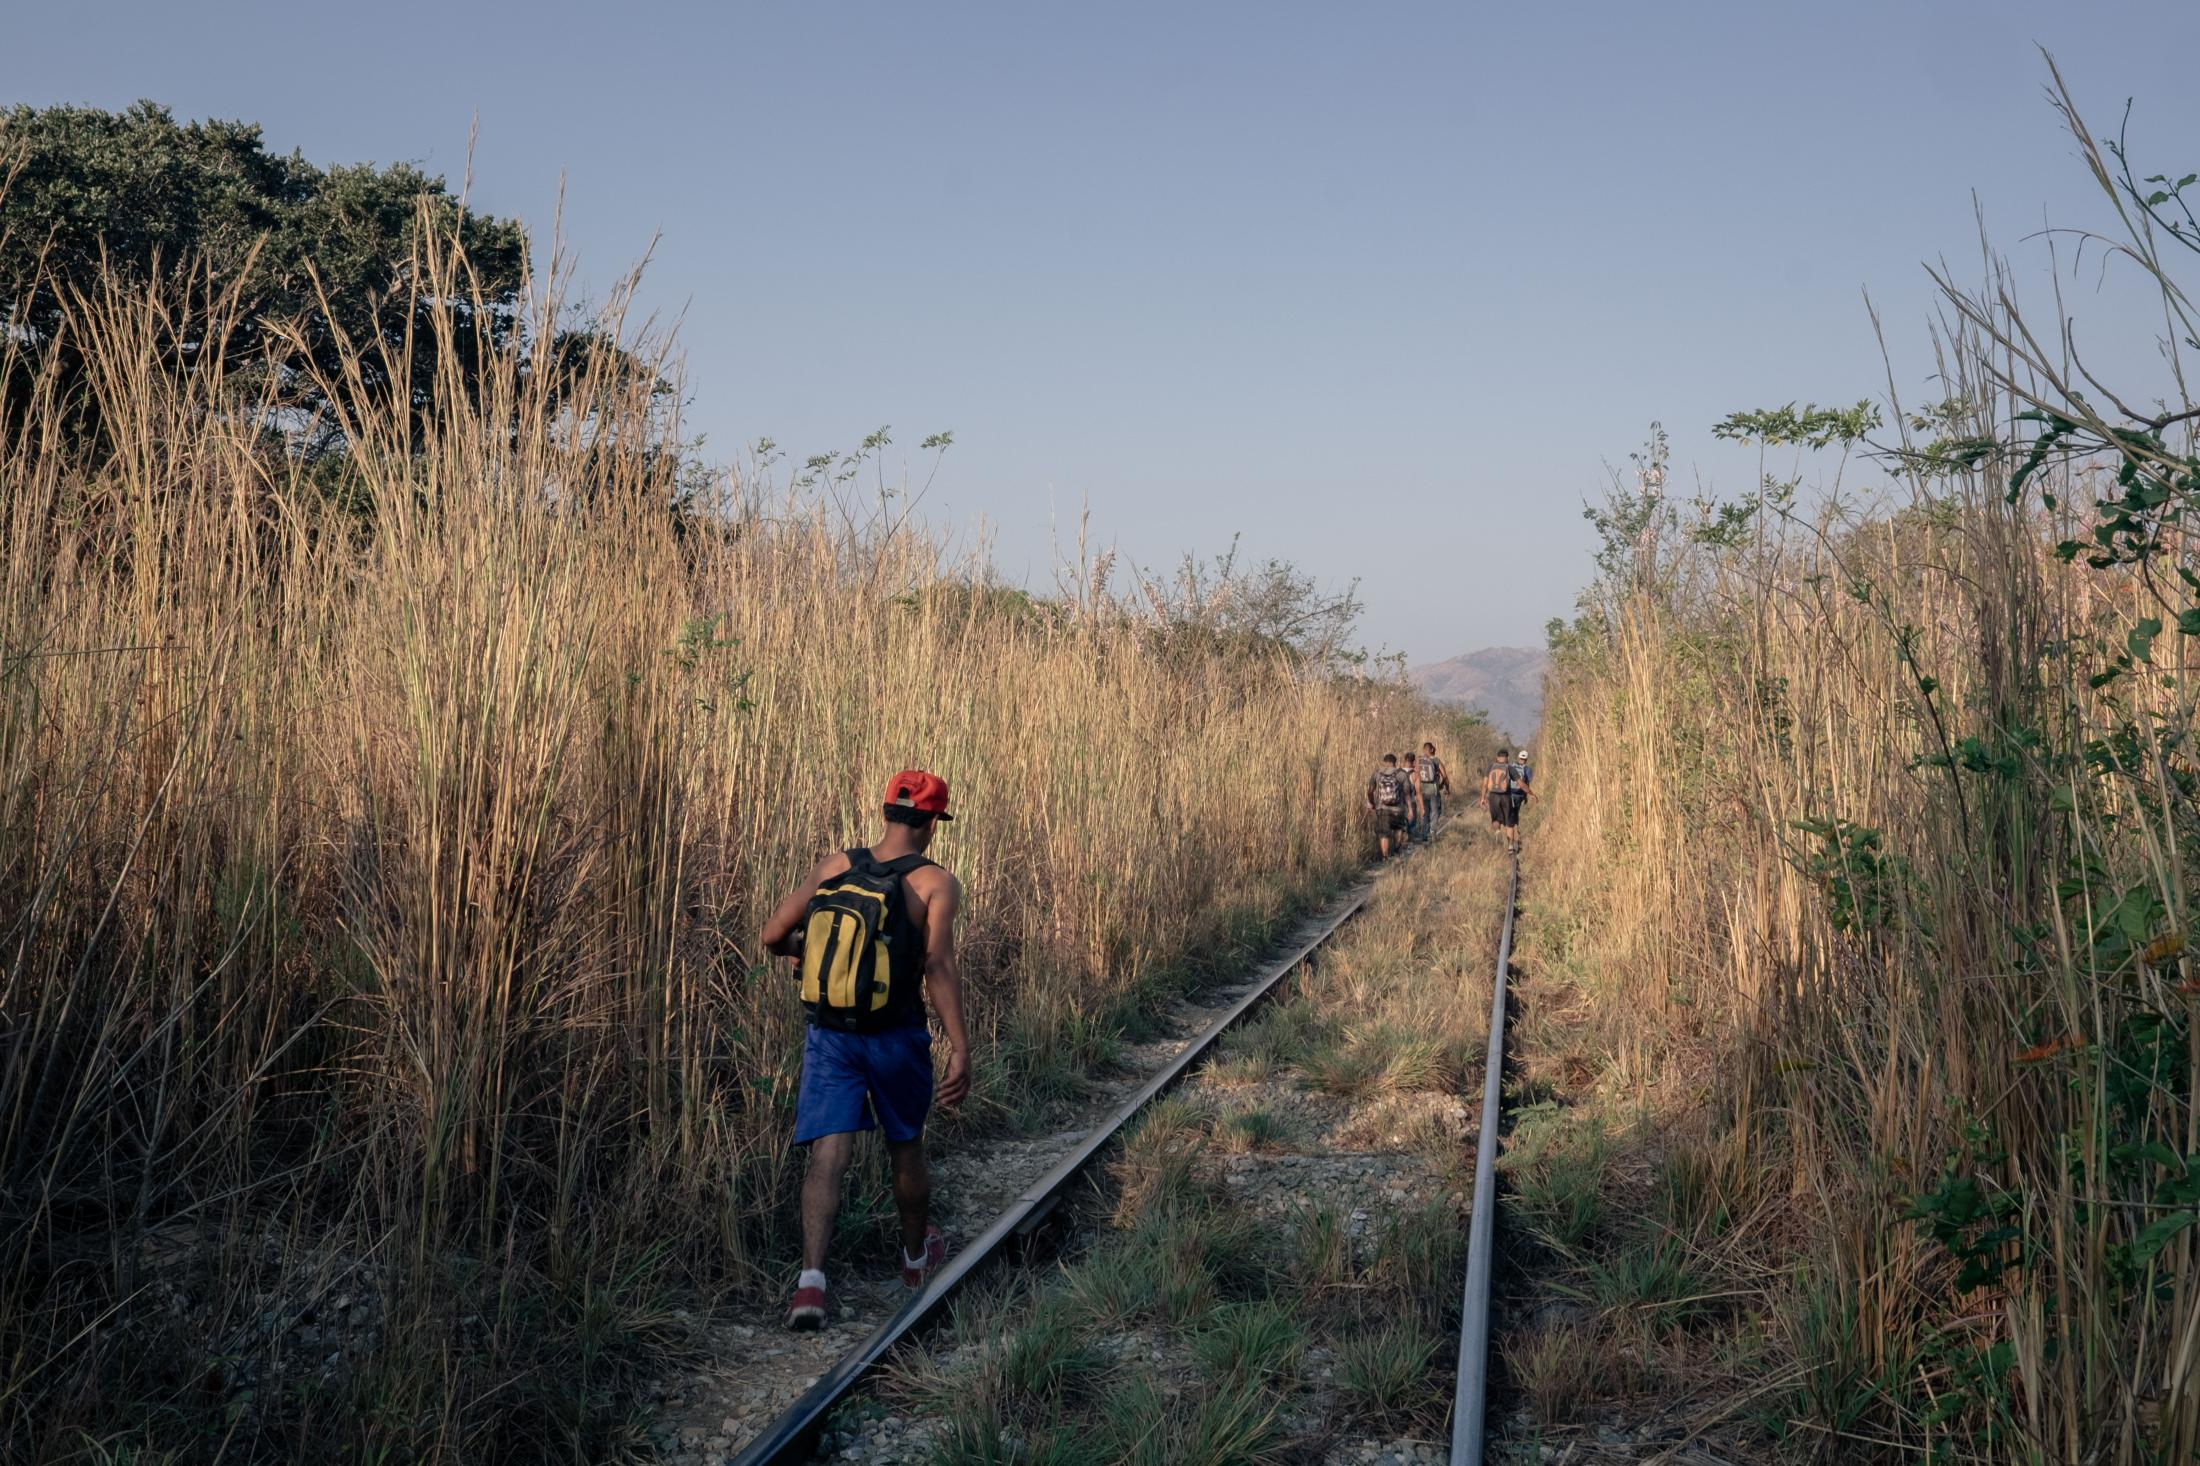 A migrant walks on the railway connecting the city of Arriaga (Chiapas) to Chahuites (Oaxaca). This road through fields is known to be particularly dangerous. Central American migrants here have regularly their backpacks and shoes stolen by people armed with machetes or guns. Things can go wrong if the migrants resist the gangs of robbers. 07/02/2017 Arriaga, Chiapas, Mexico.